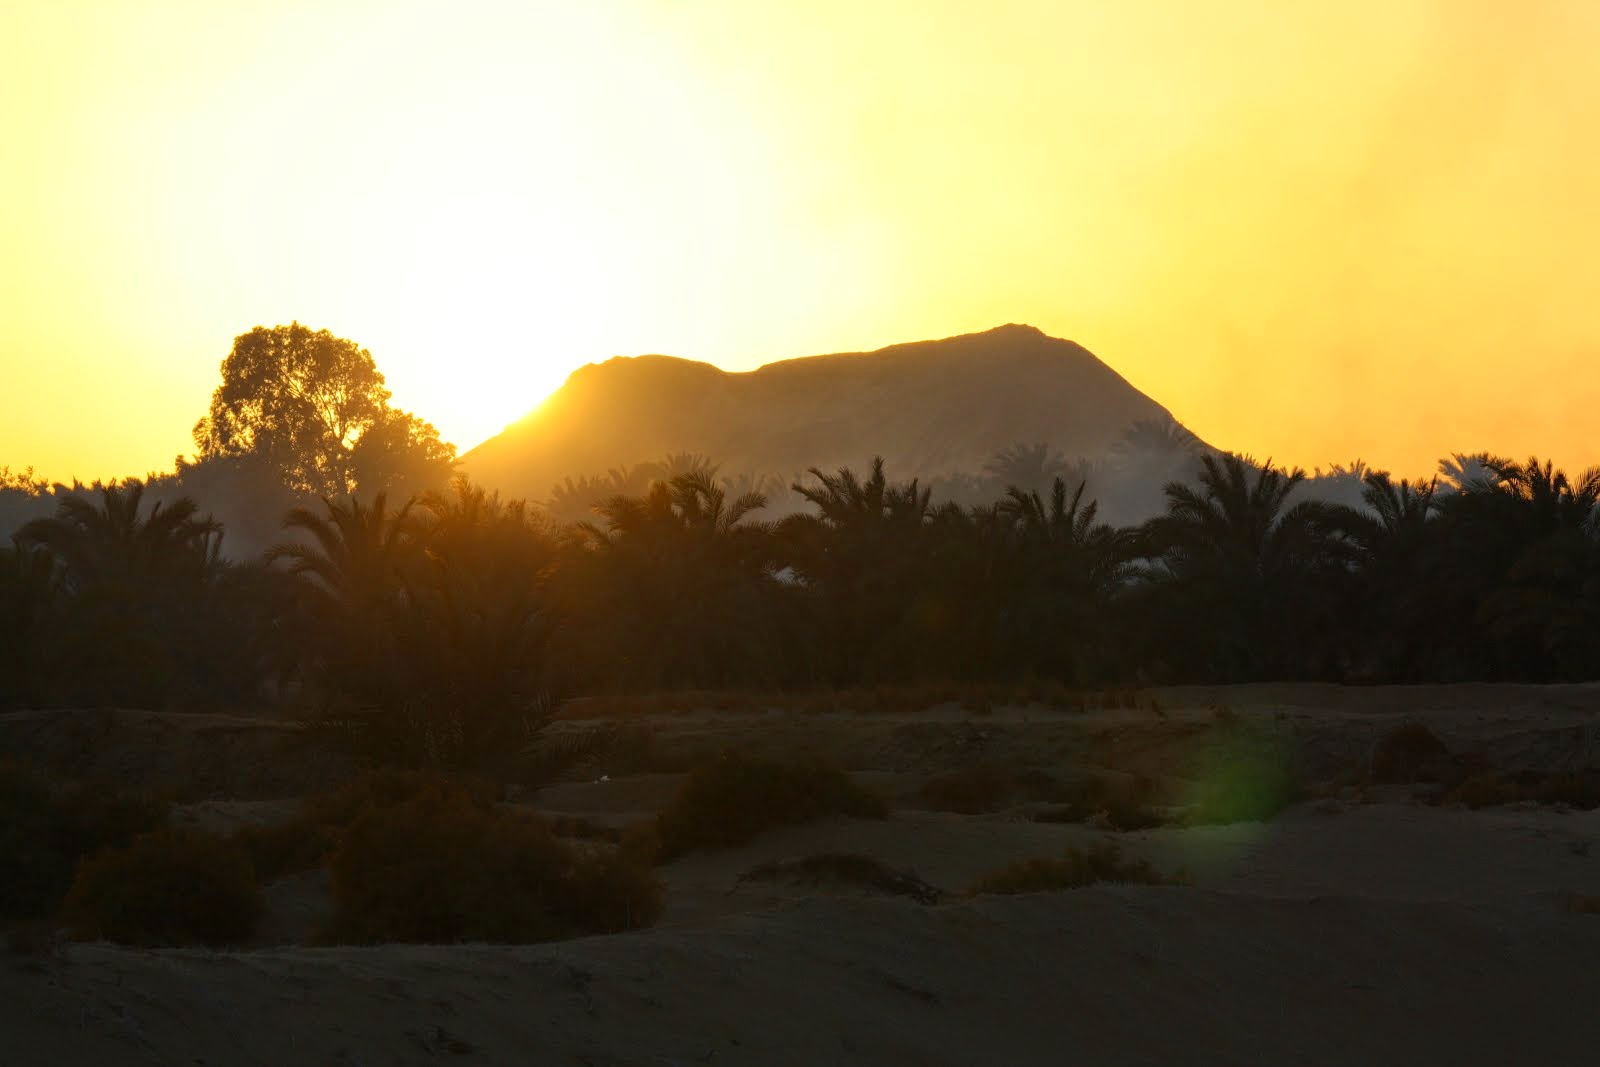 A View at the Western Desert Oasis Village of El Heiz